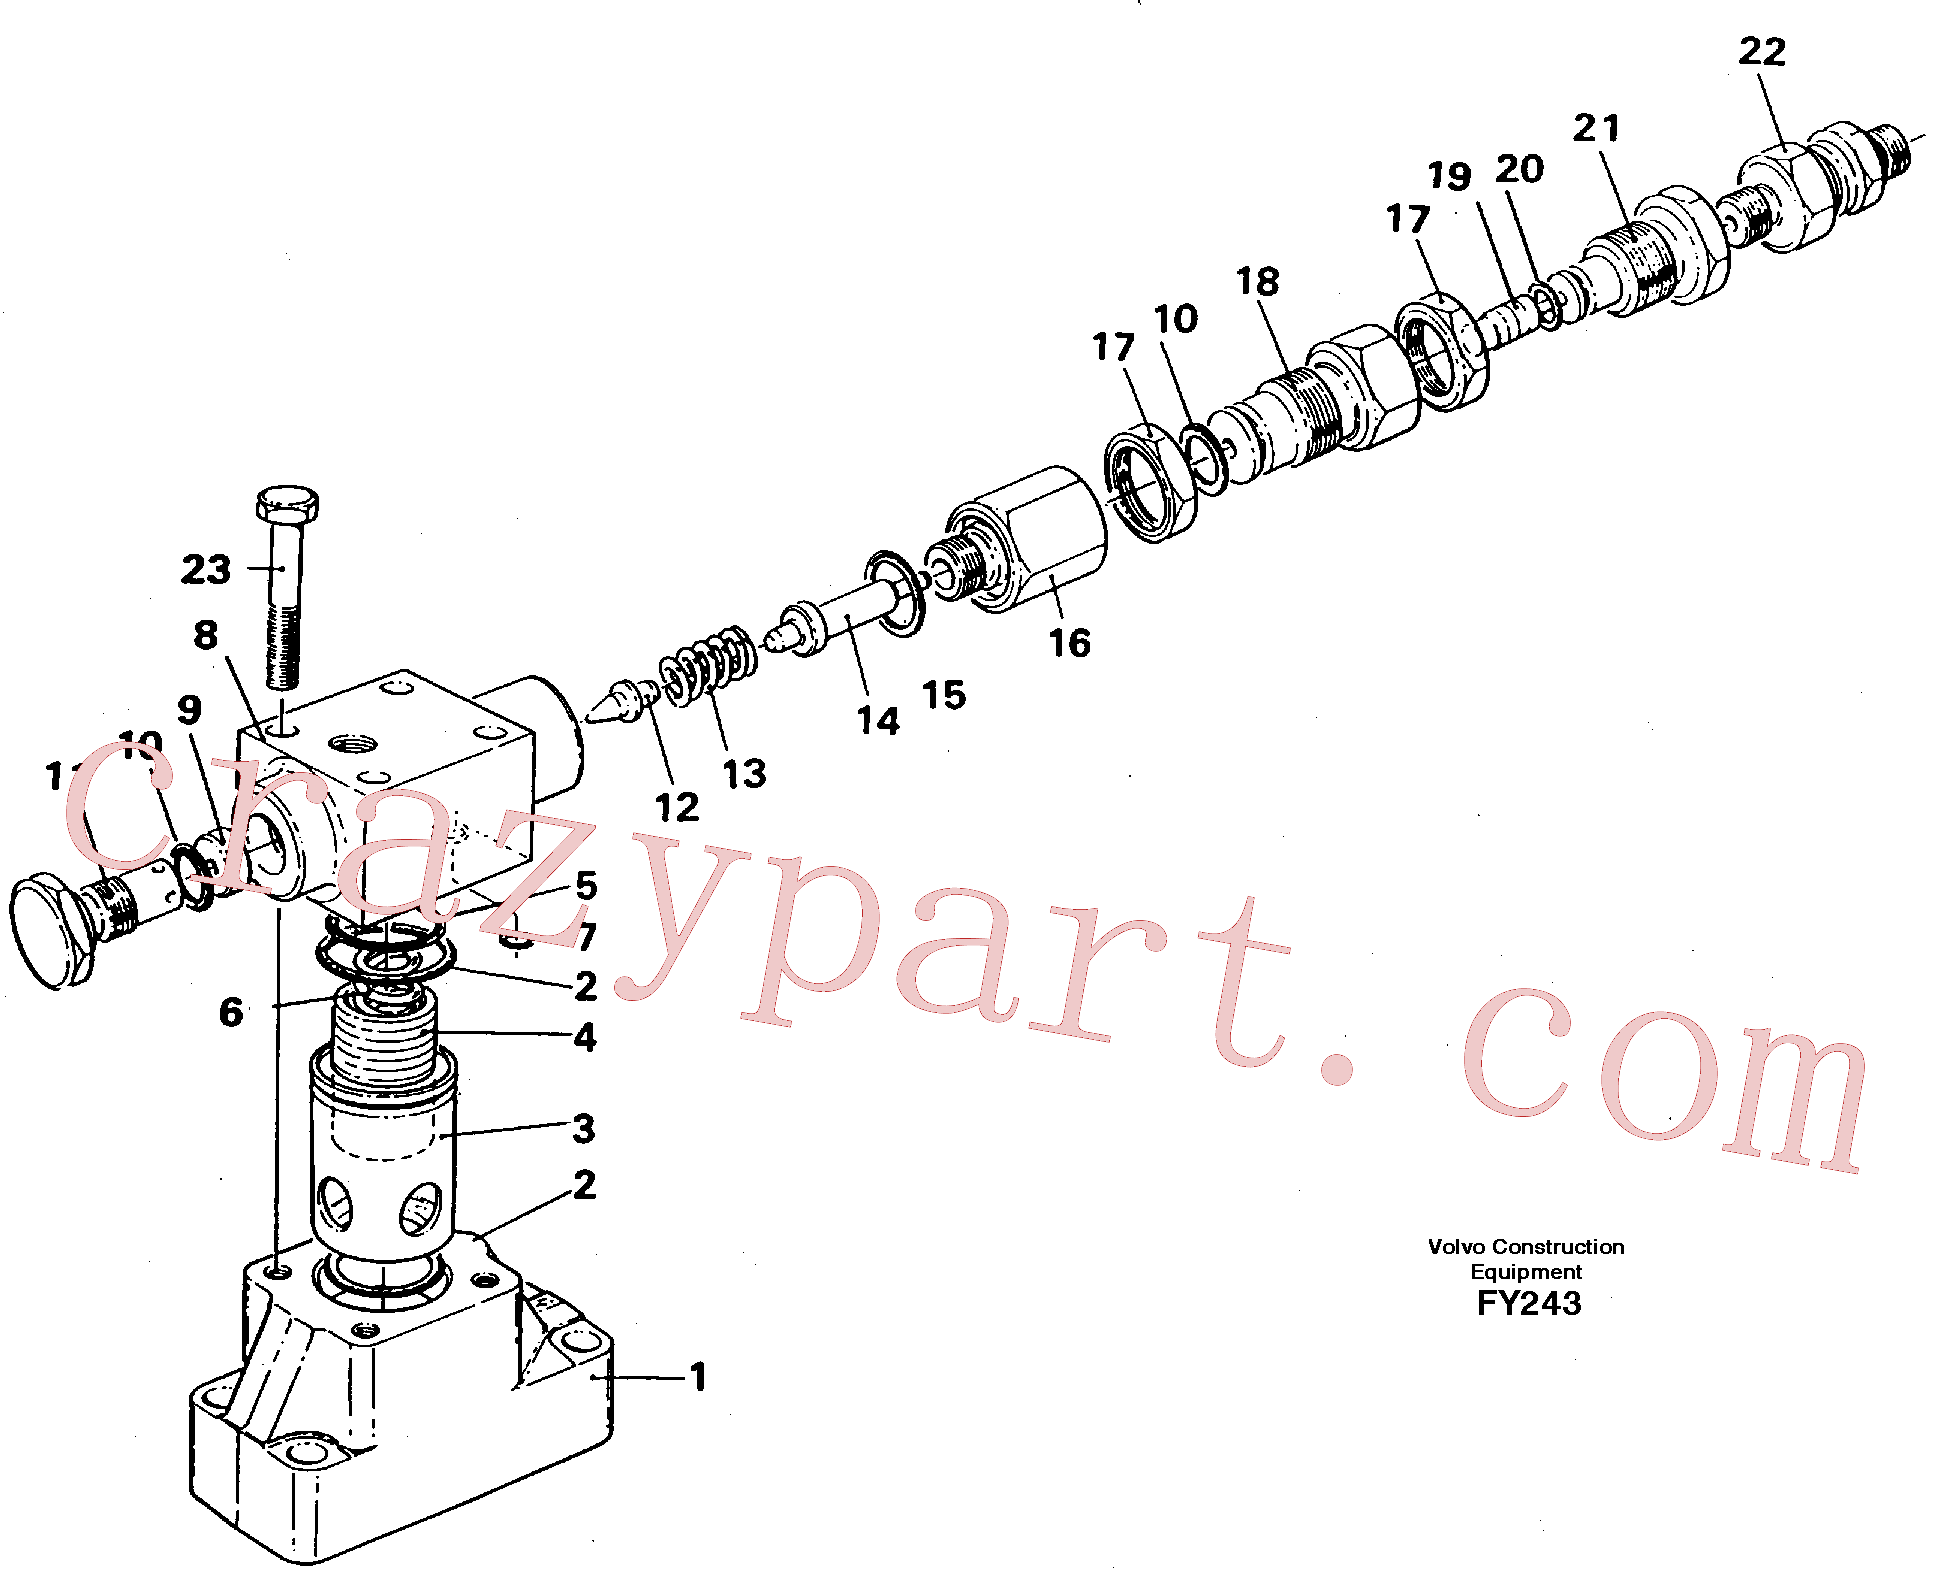 VOE14235611 for Volvo Pressure limiting valve(FY243 assembly)